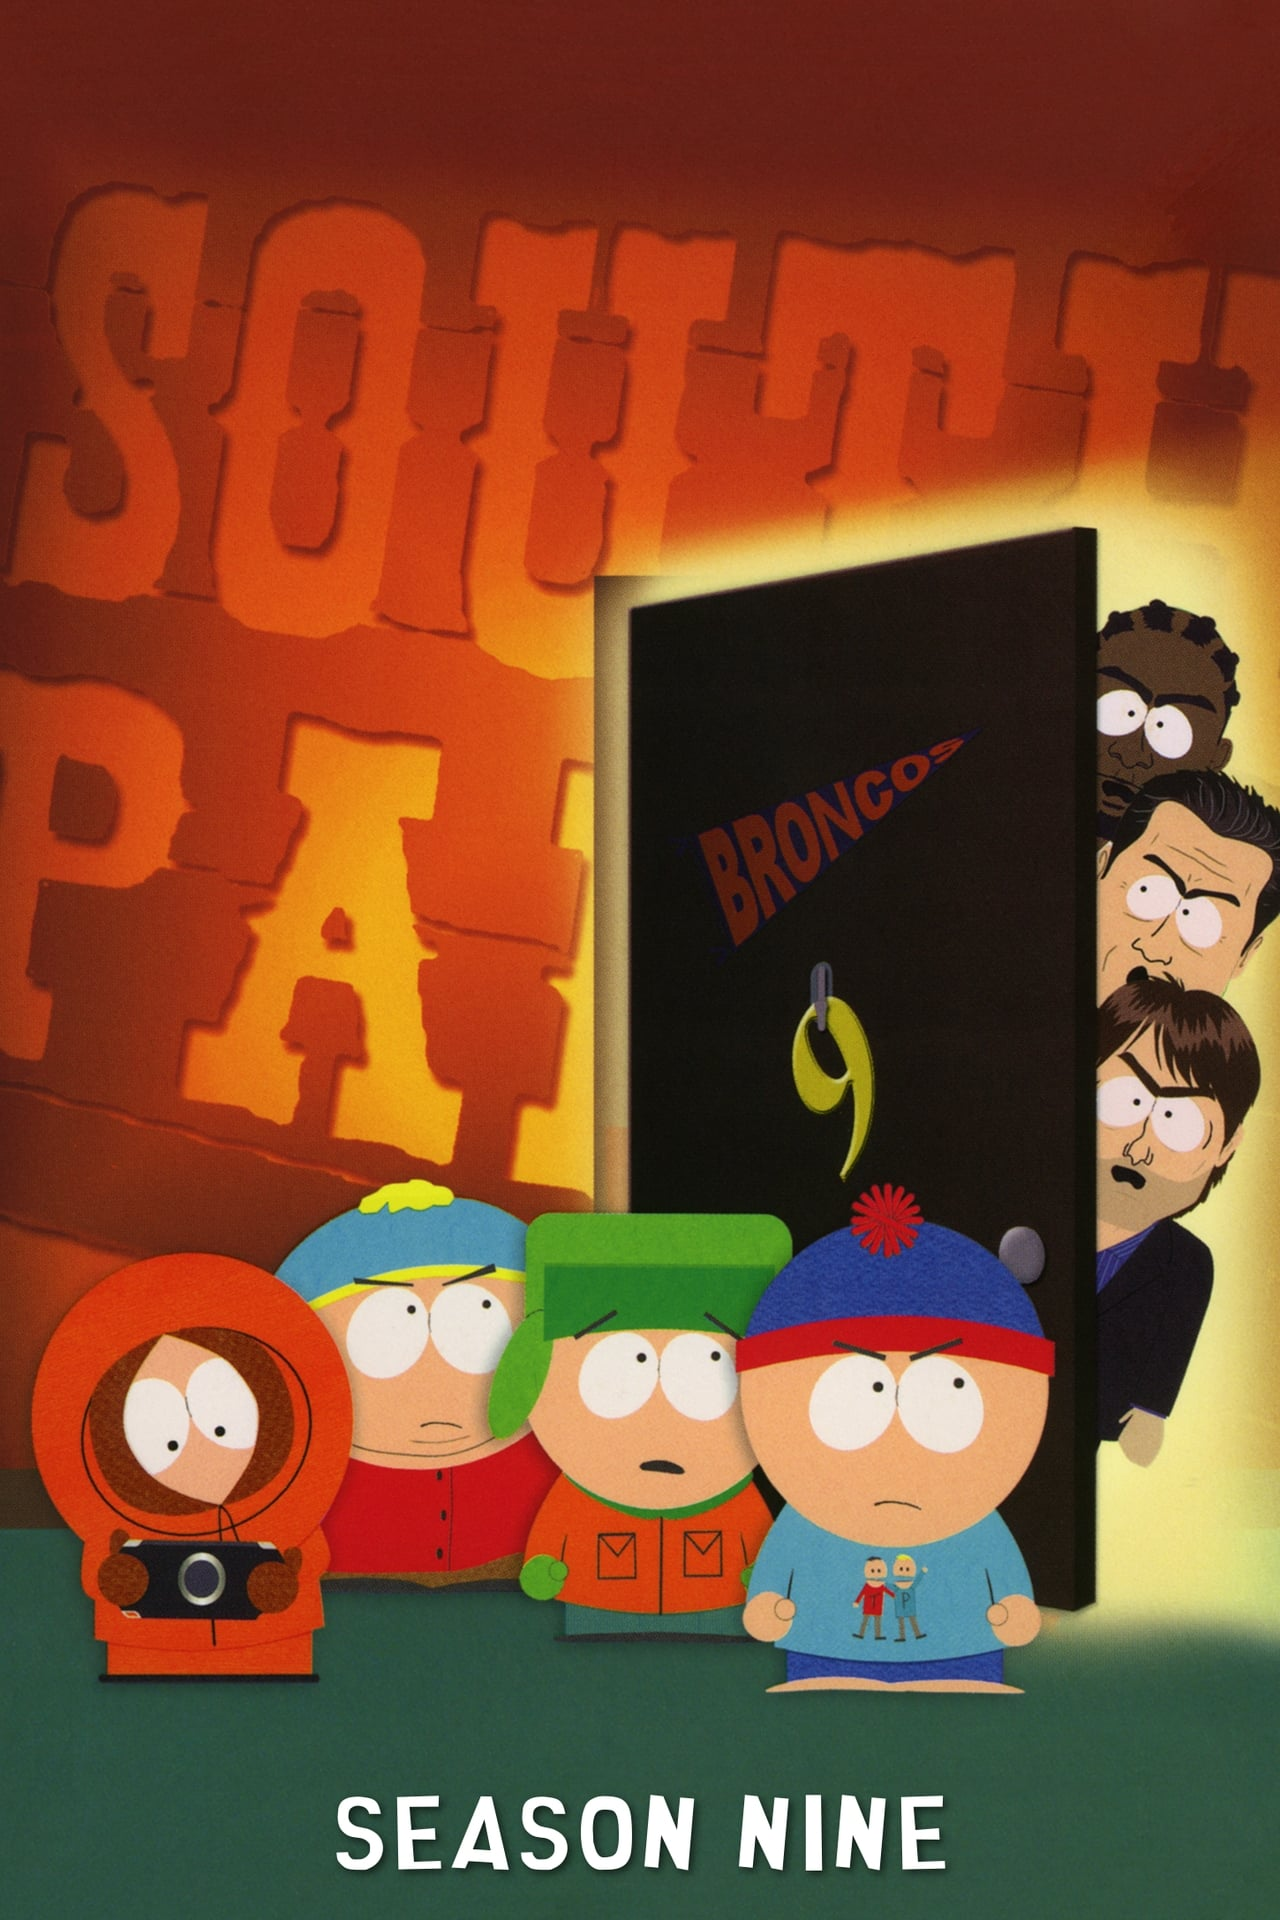 South Park Season 9 (2005) putlockers cafe